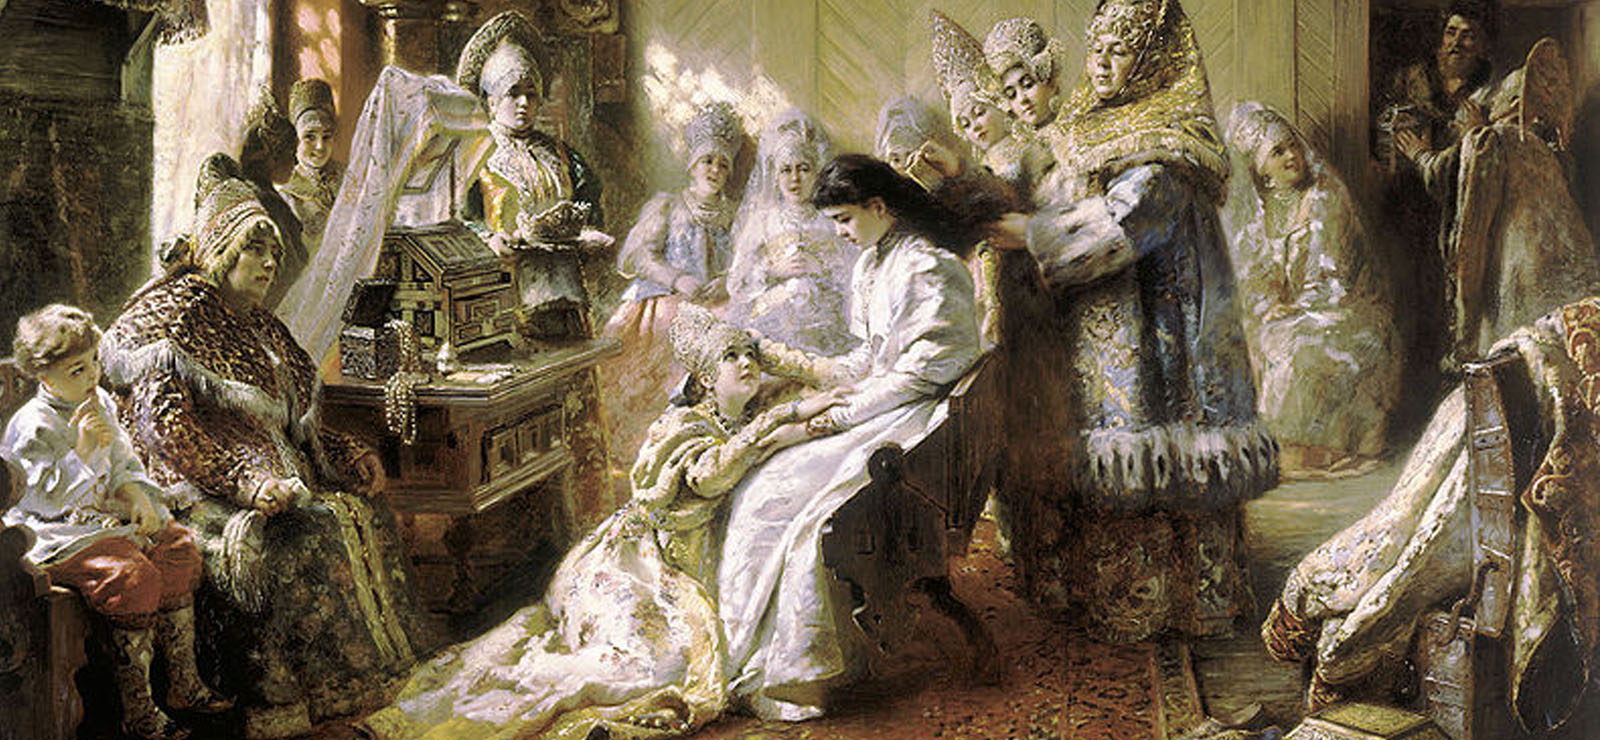 [Program Twelve: The Tsar's Bride] The Russian Bride (1884) by Konstantin Makovsky